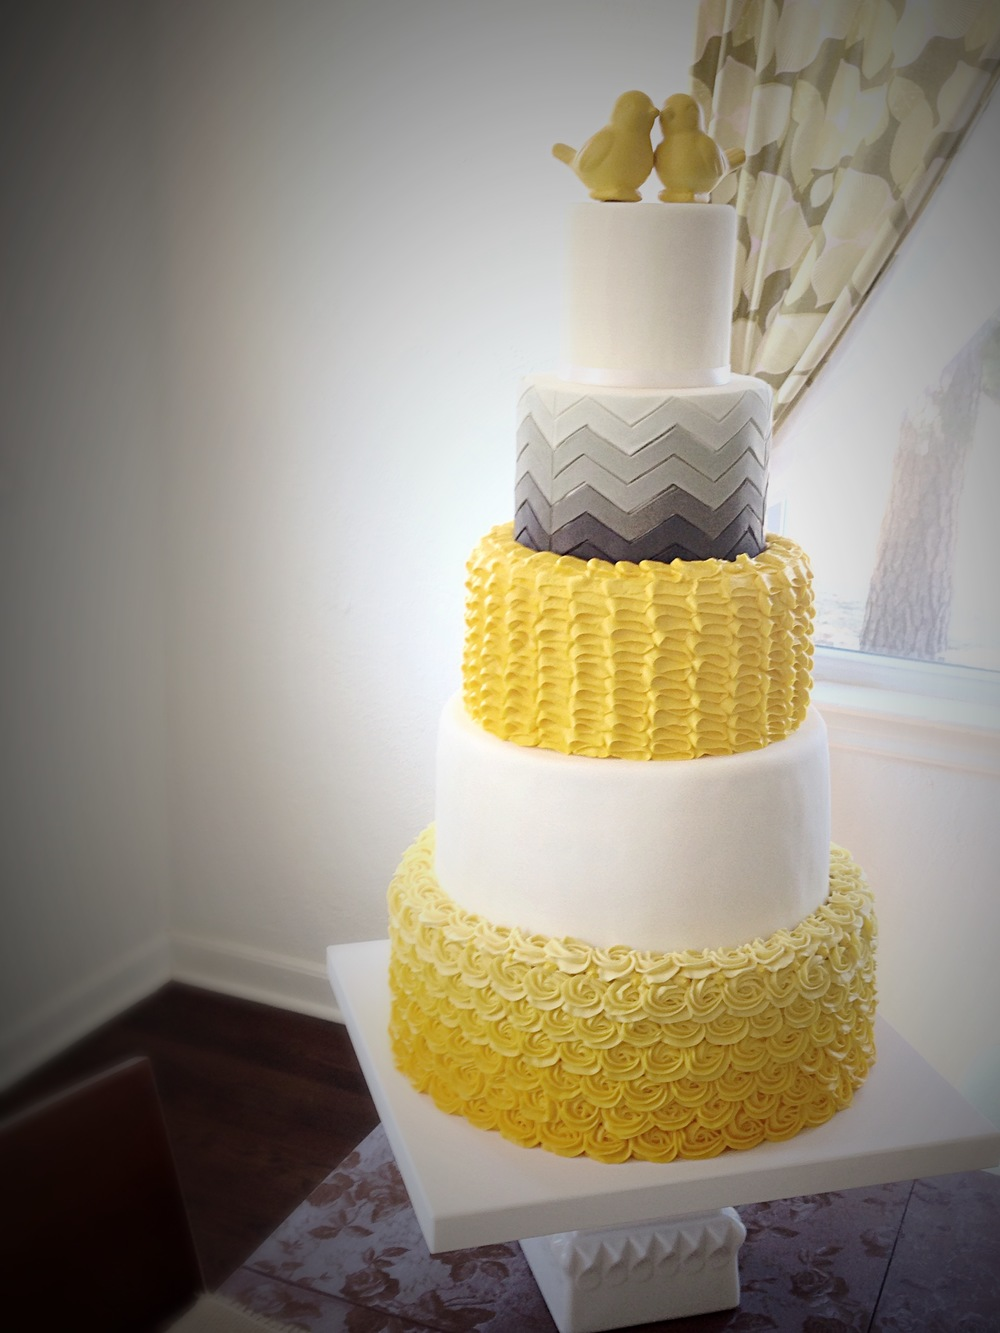 WEDDINGS — Whipped Cakes